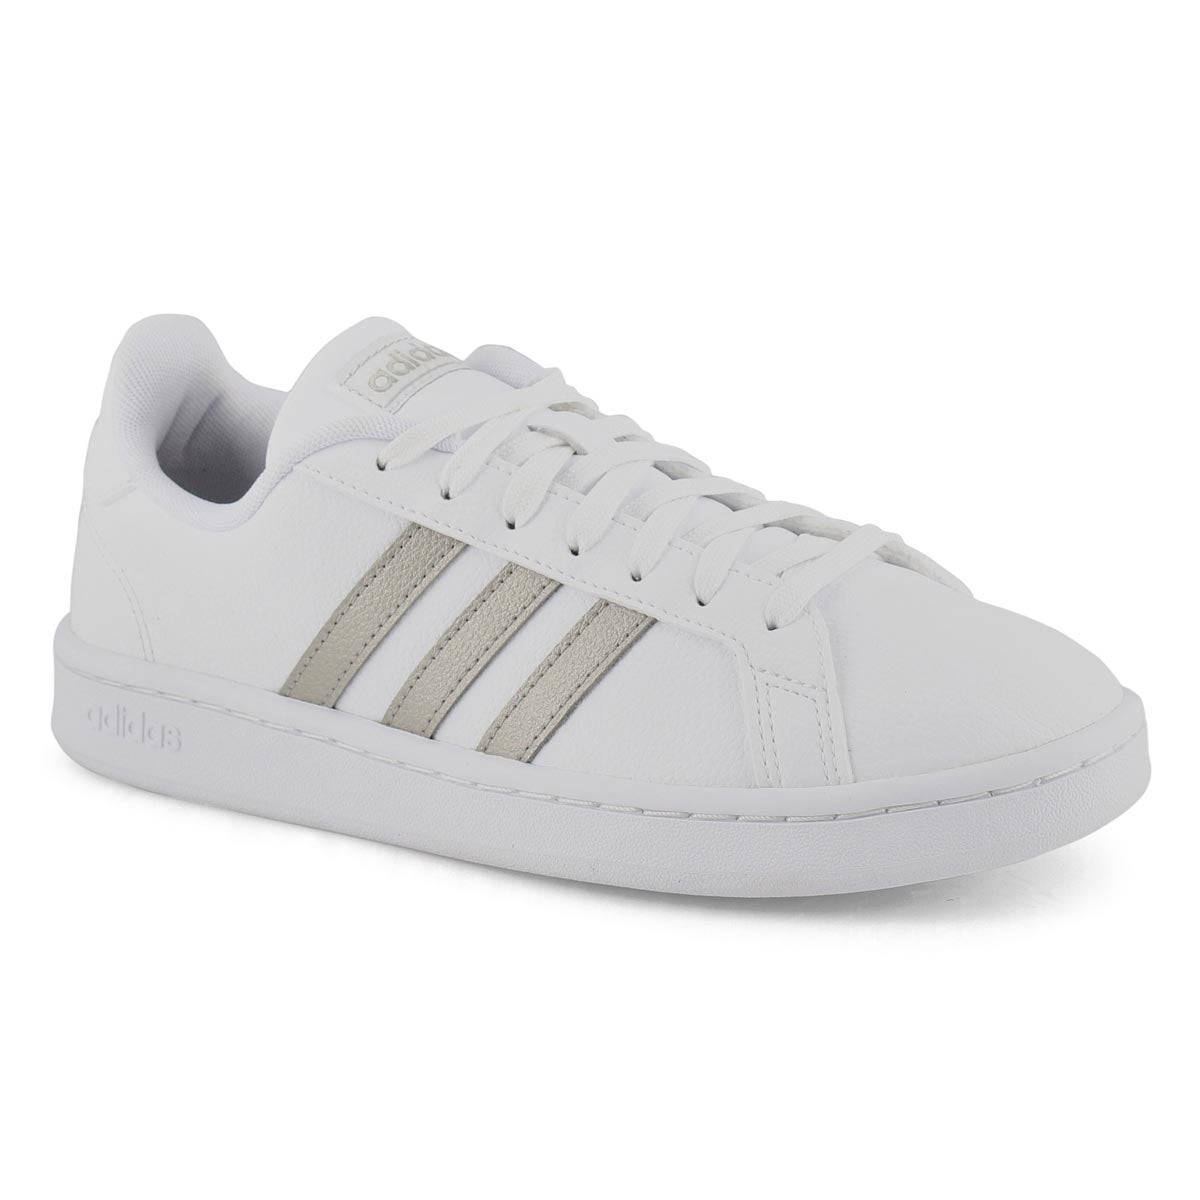 Women's GRAND COURT whiteplatinum sneakers